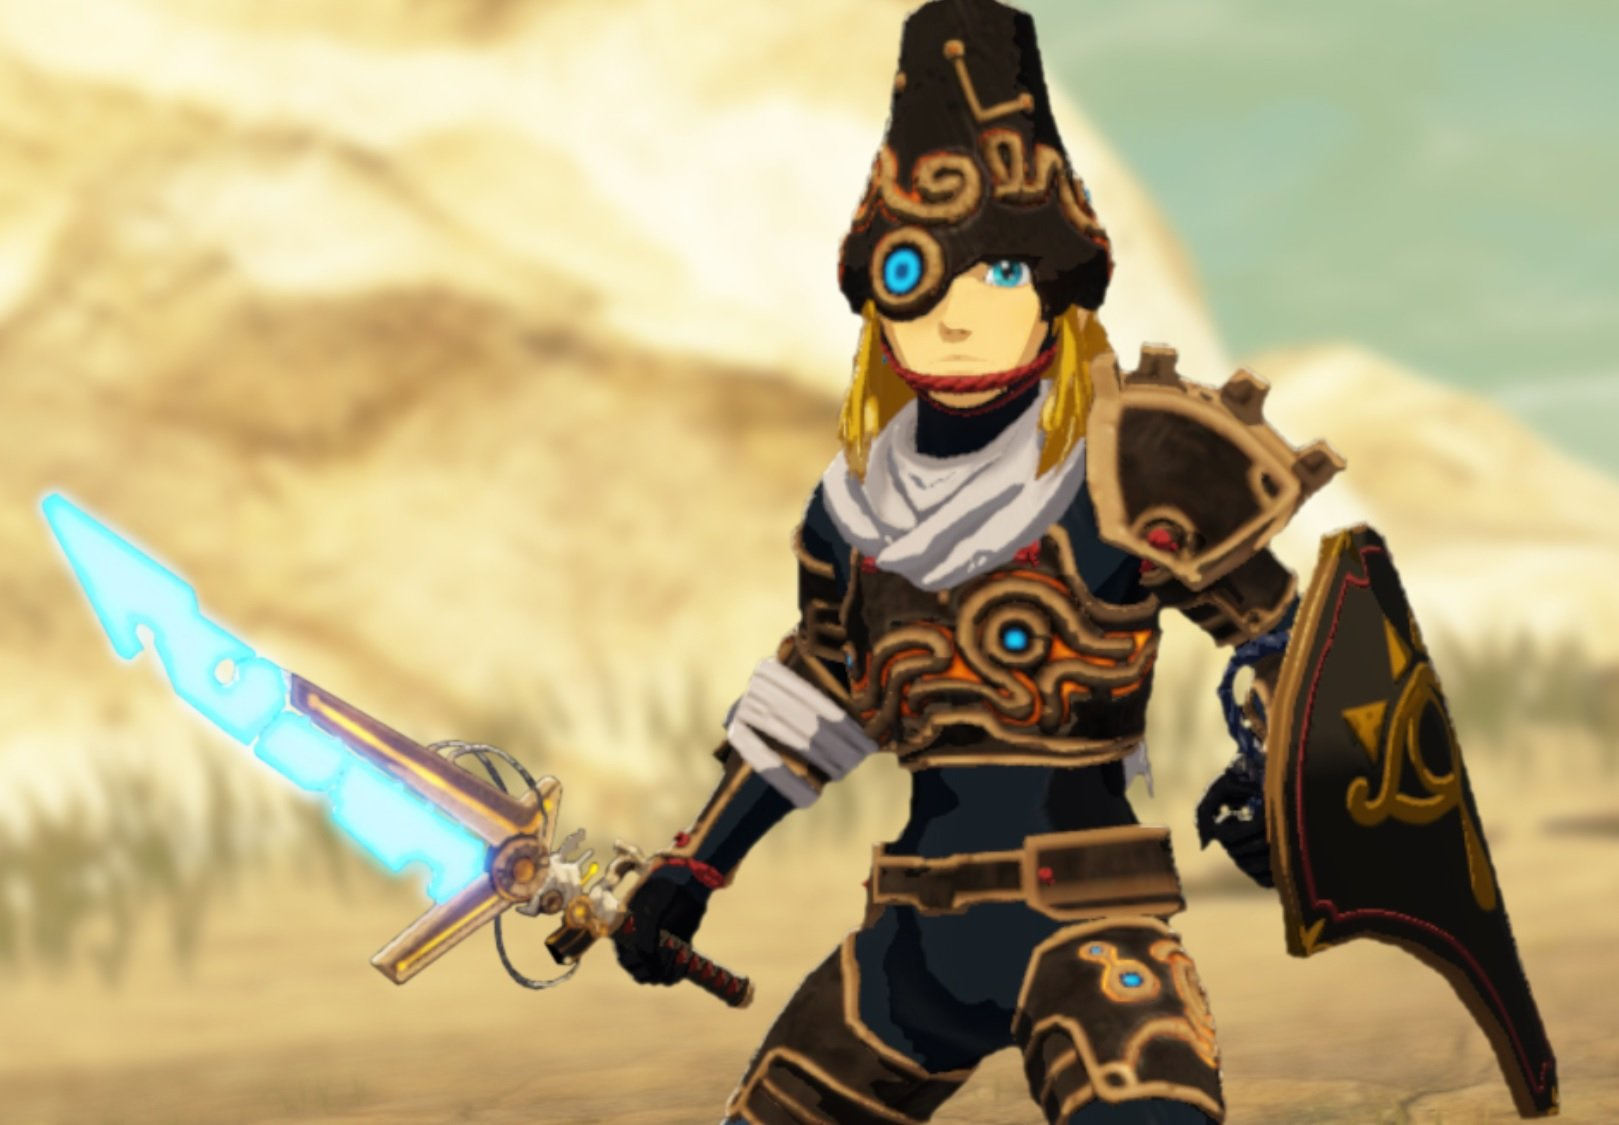 Hyrule Warriors: Age of Calamity reveals its special expansion pass DLC costume screenshot